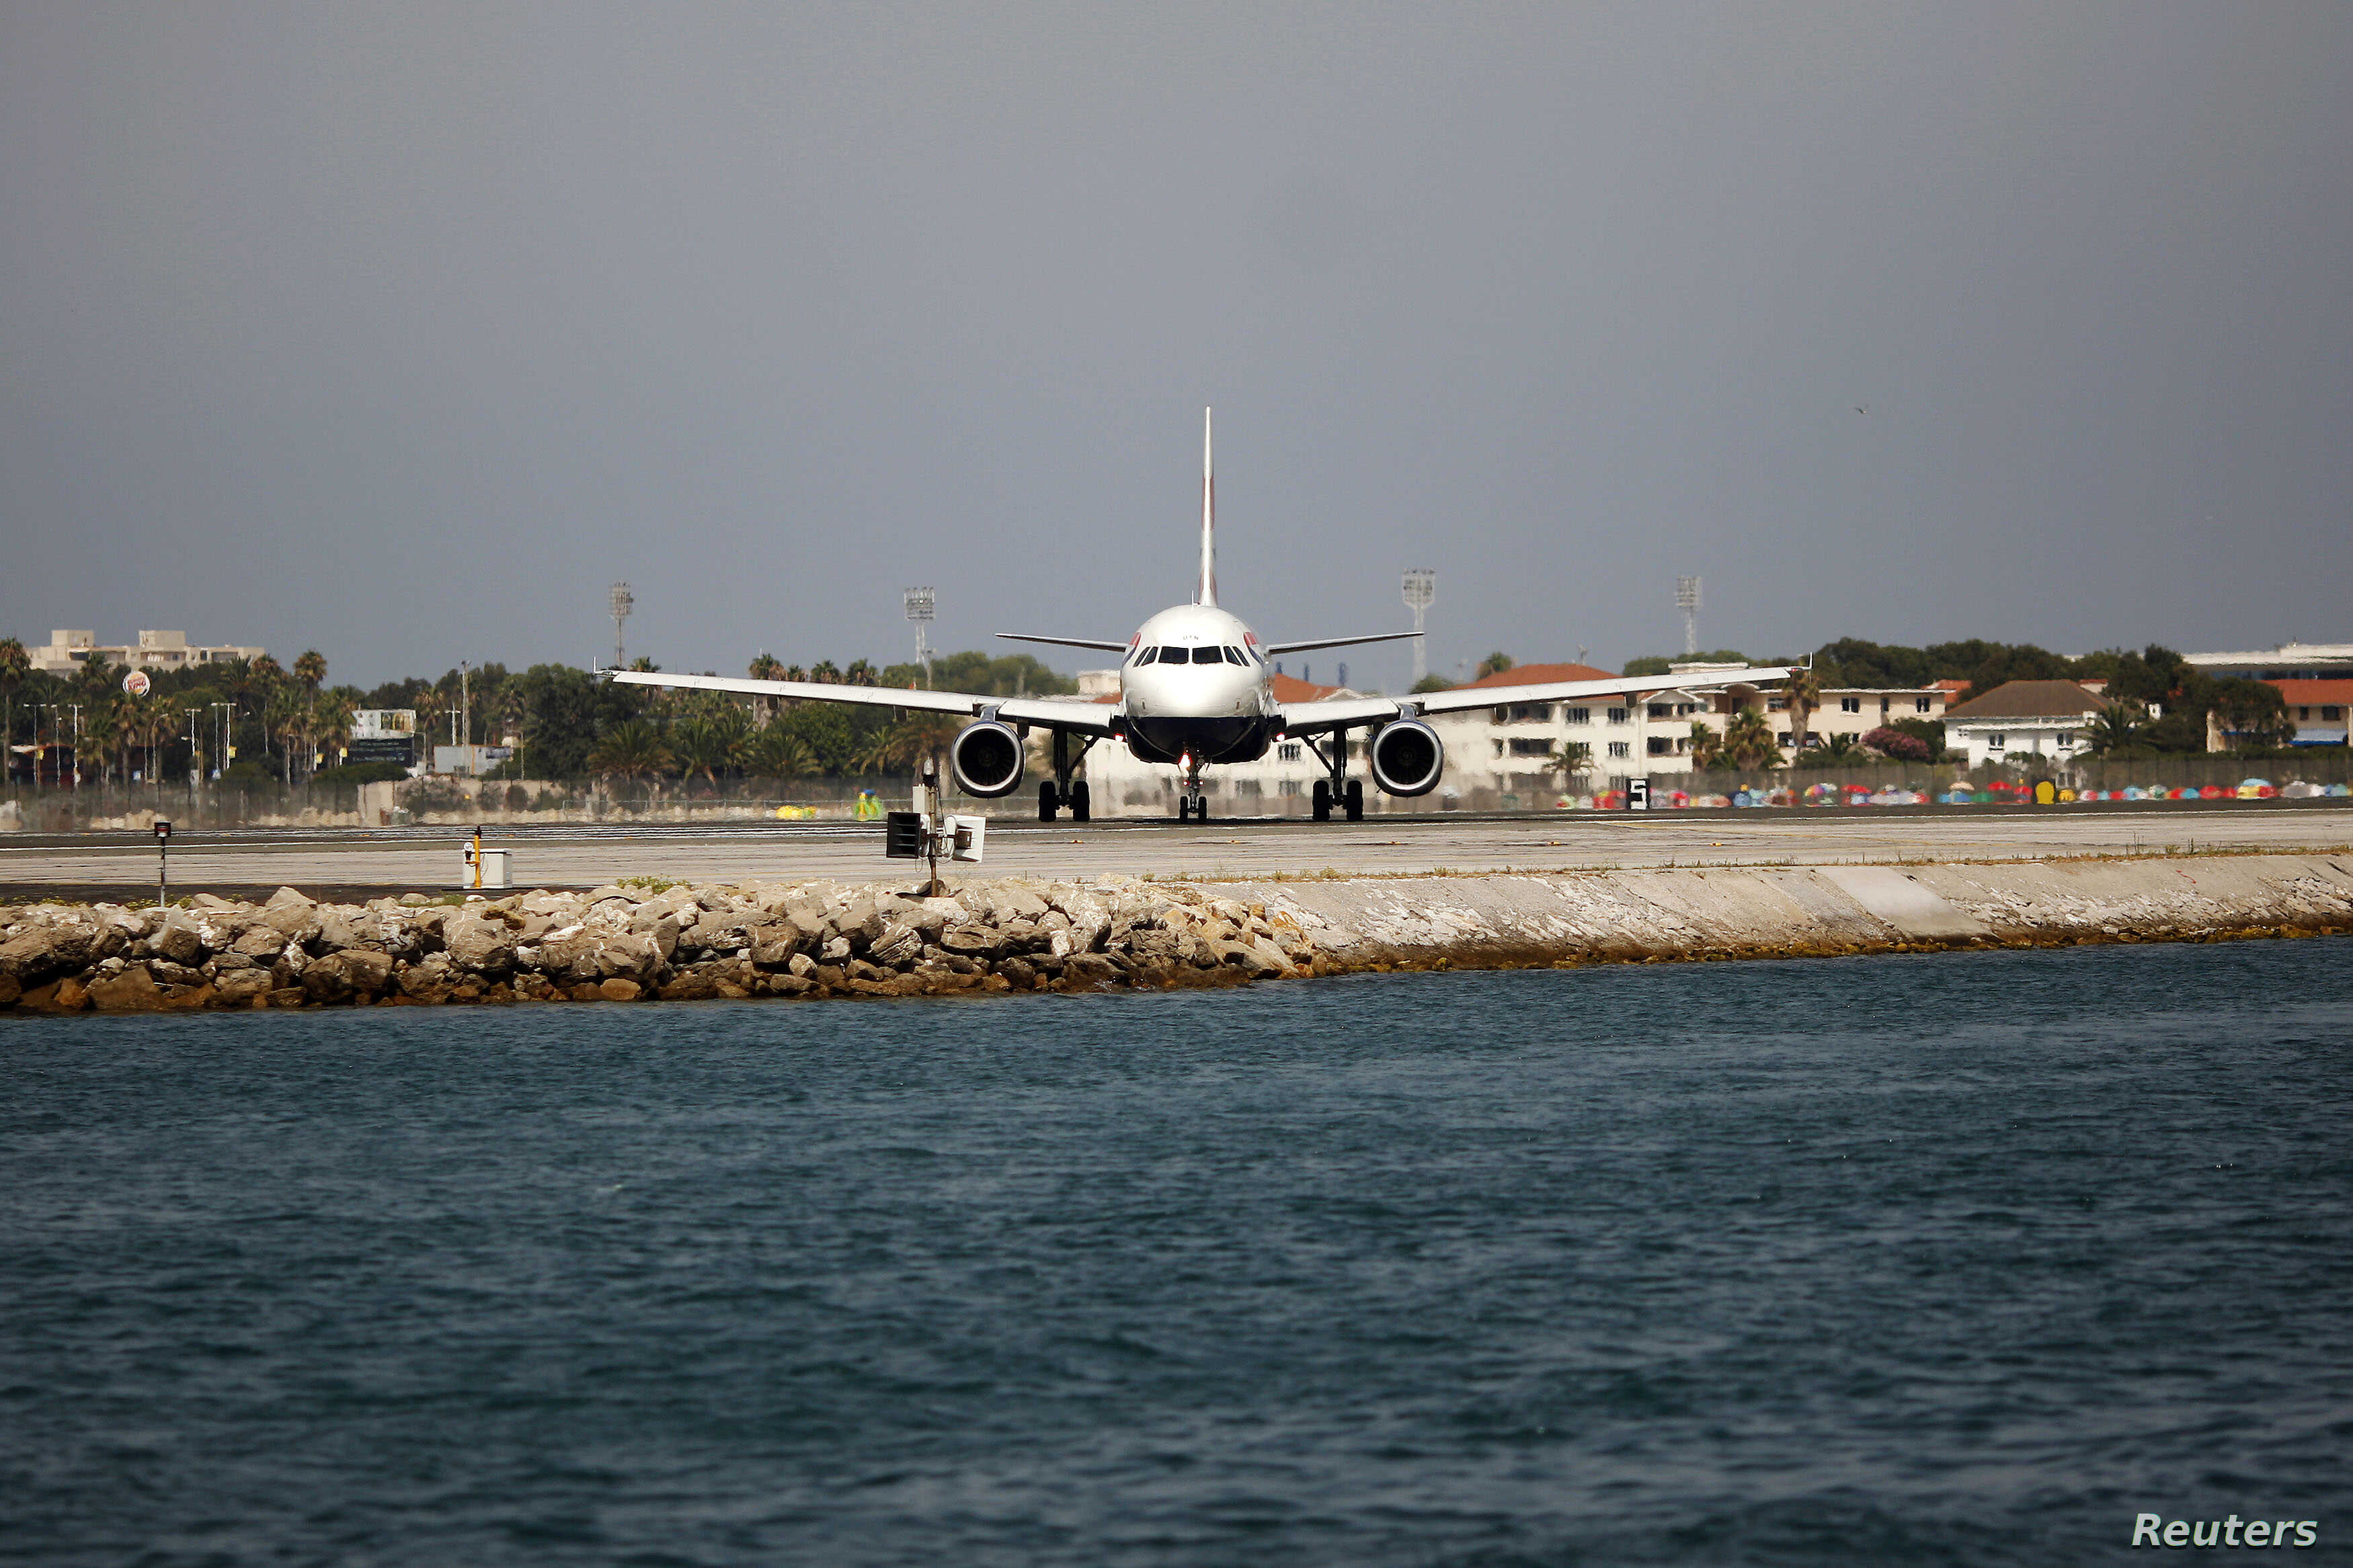 A British Airways plane is seen on the tarmac before taking off at the Gibraltar International airport, in Gibraltar, south of Spain, August 4, 2013.